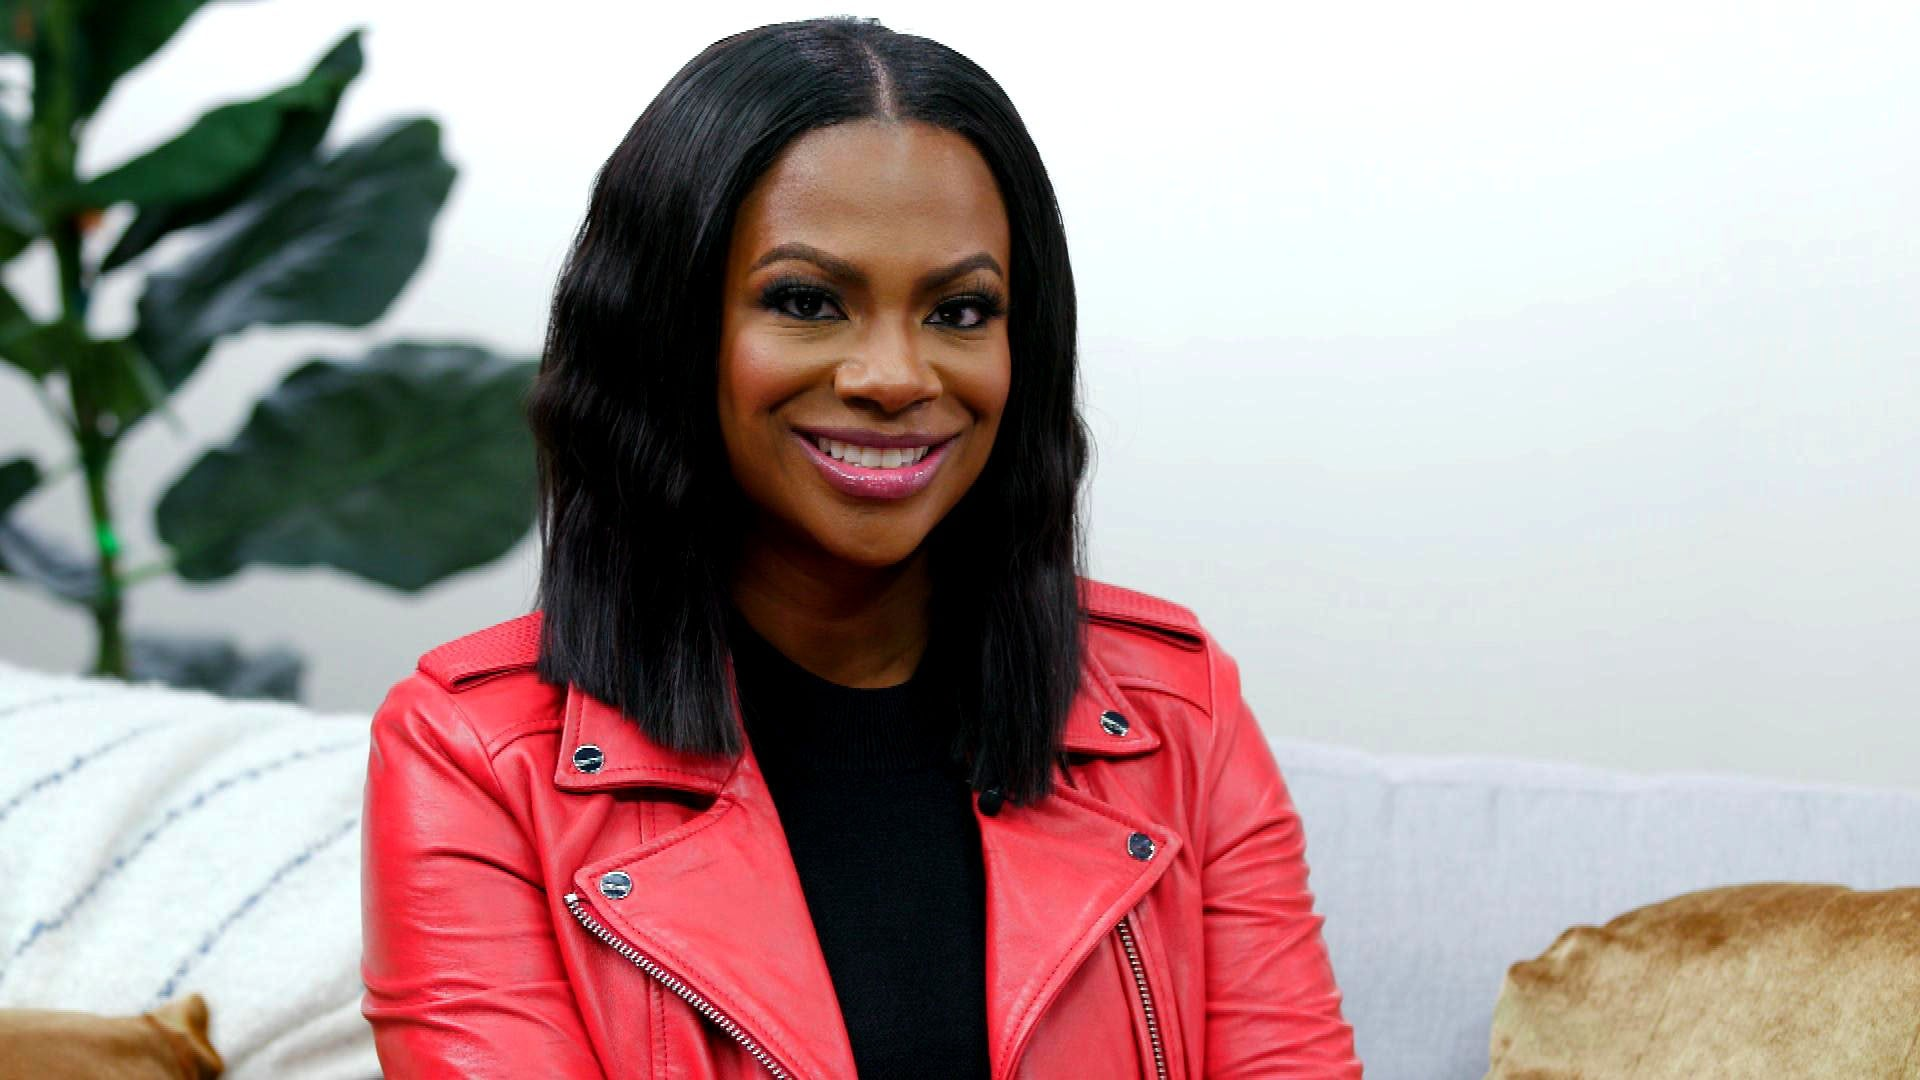 Kandi Burruss Makes Fun Of The Hilarious Looks On Her Own Face While Showing Tammy Rivera Support